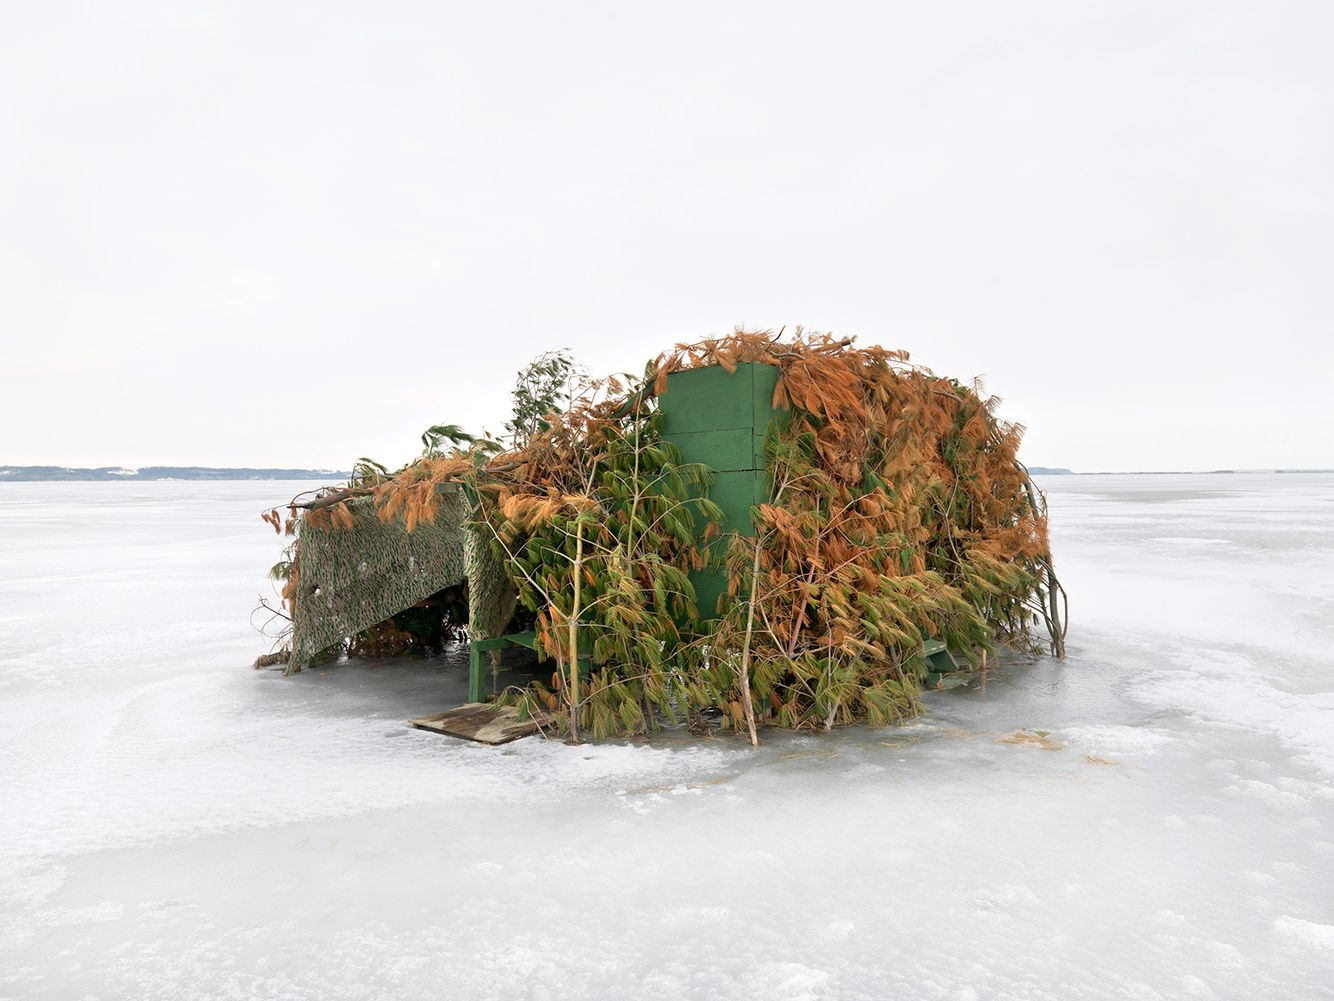 Duck Blind #25, Mississippi River, Northwest Illinois 2008